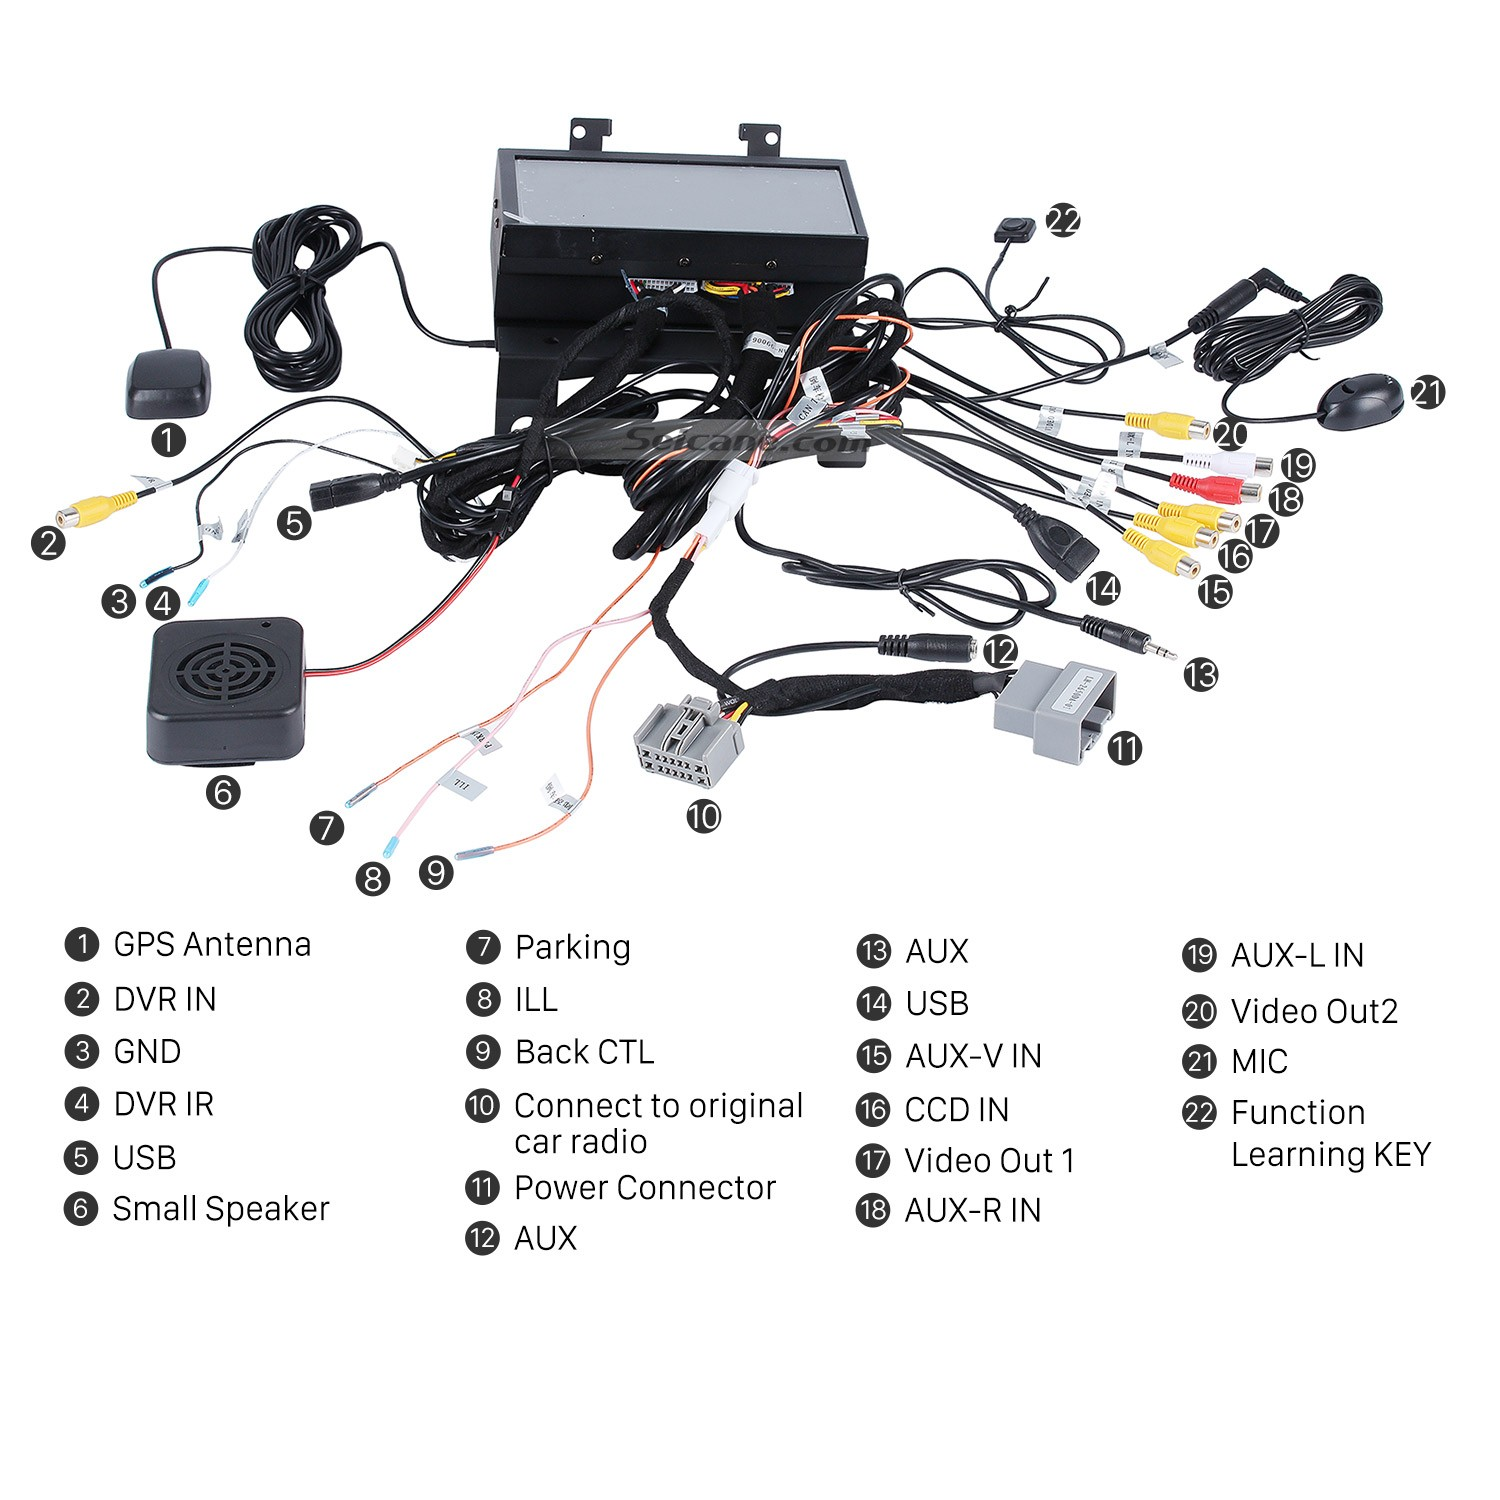 Freelander 2 Wiring Diagram